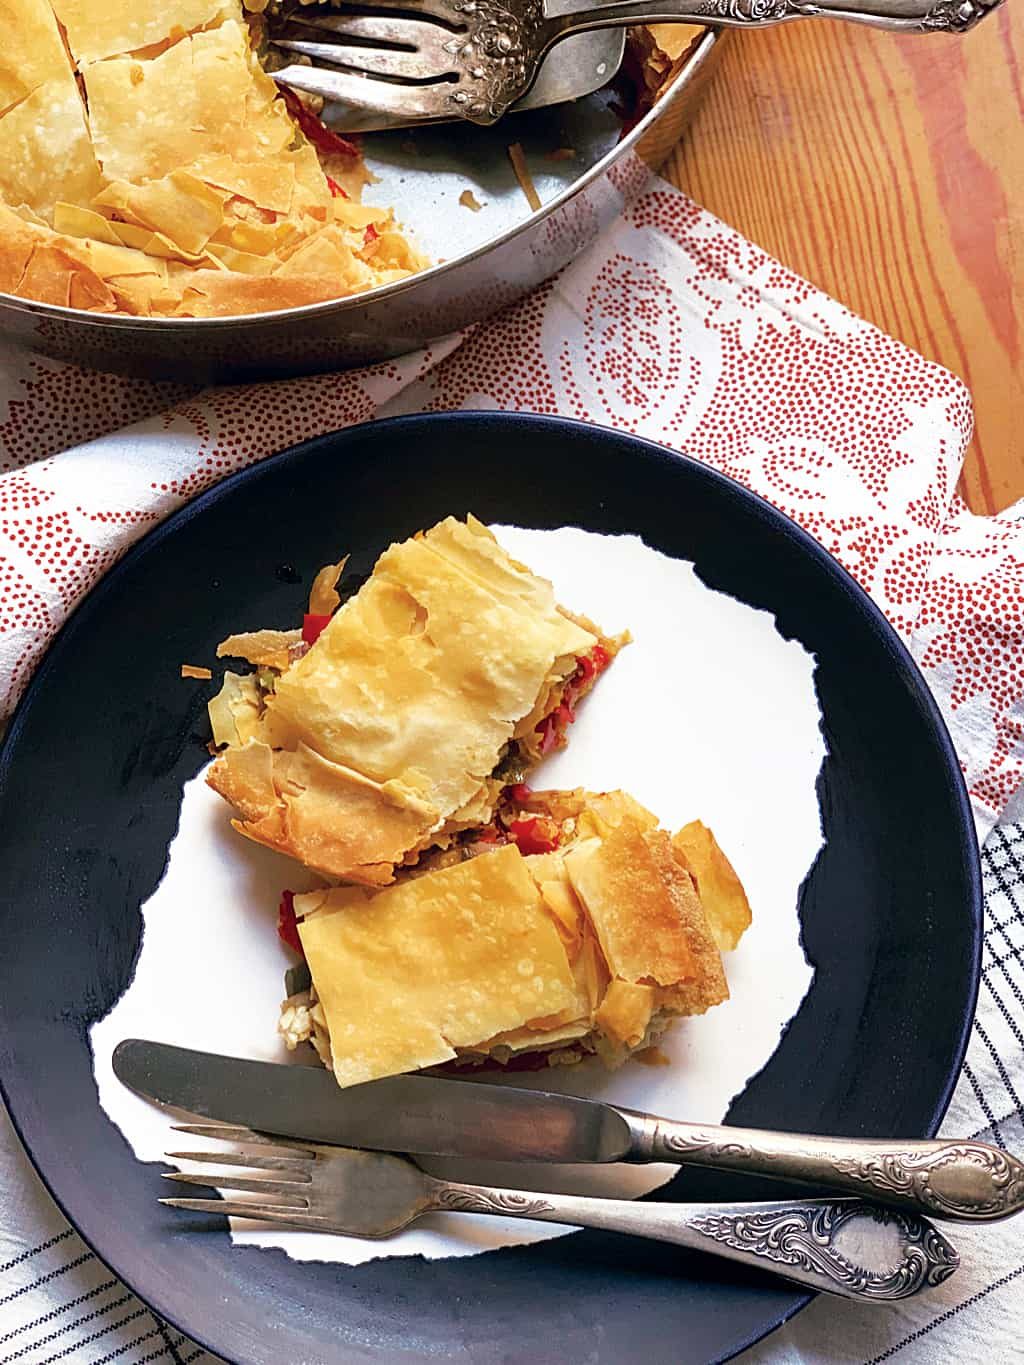 A plate with two pieces of belle pepper pie and utensils.